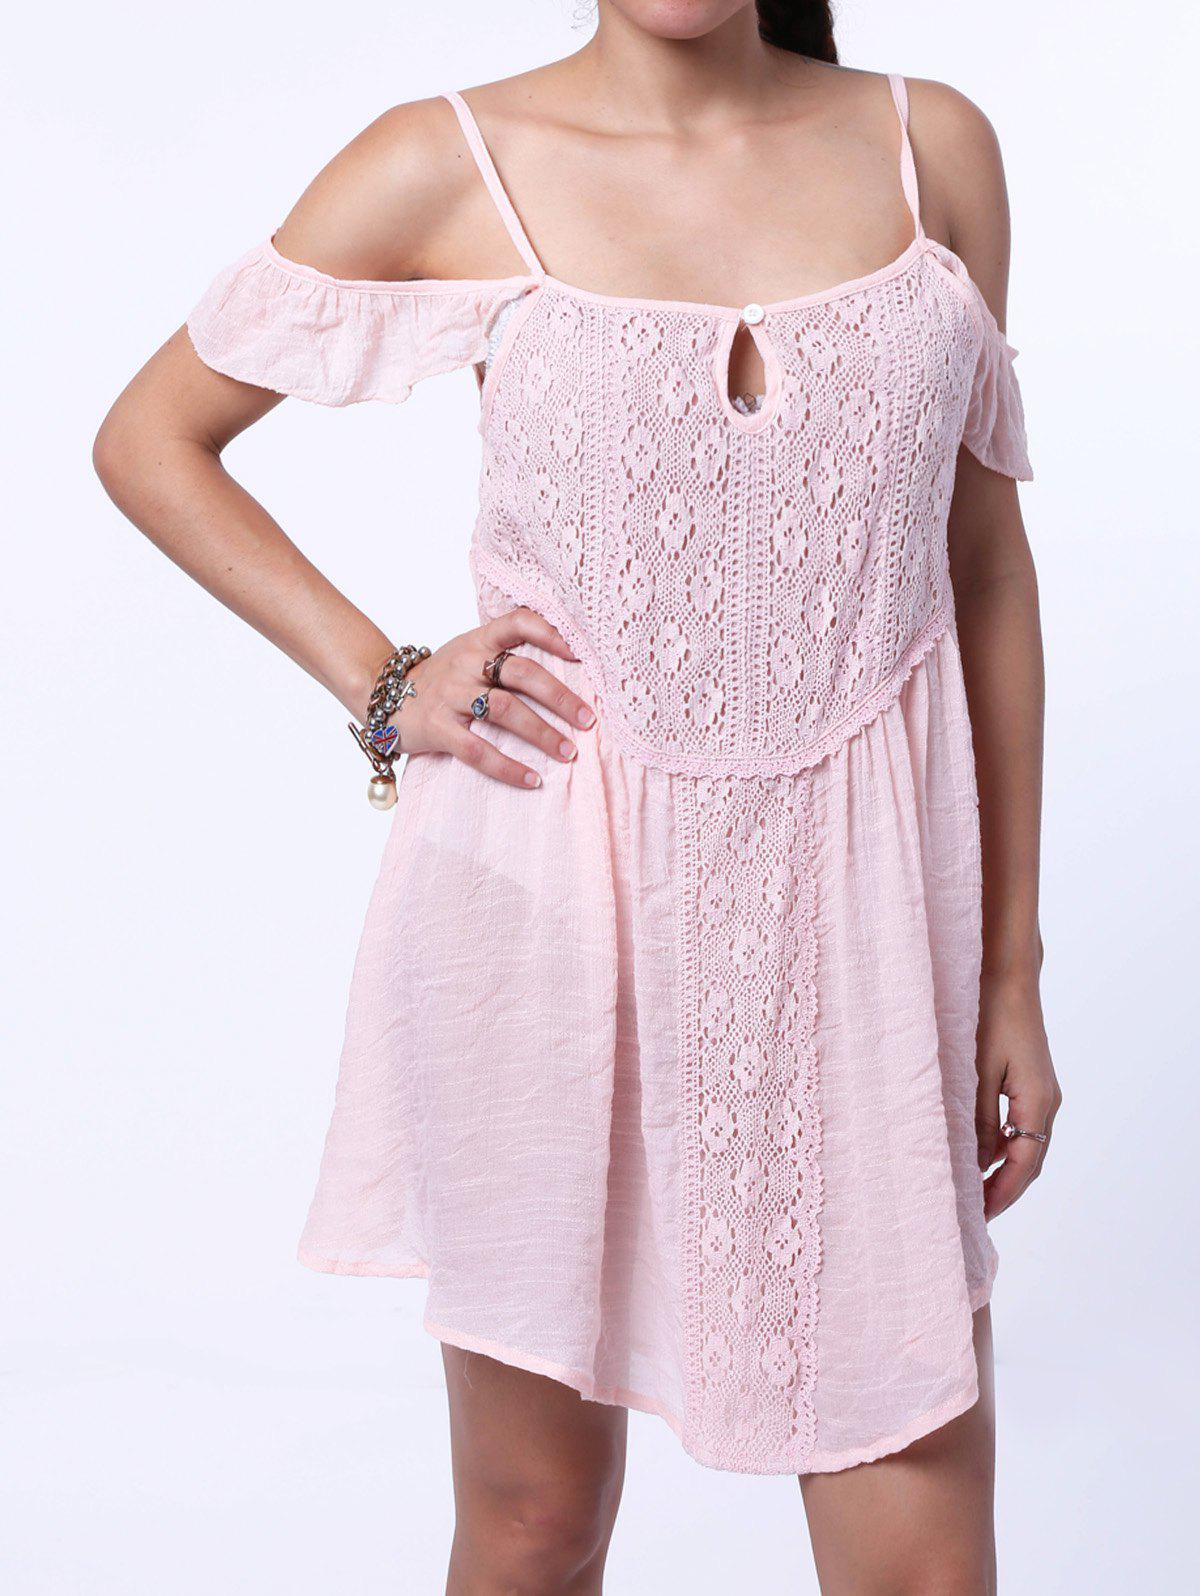 Bohemian Lace Embellished Strappy Dress For Women - SHALLOW PINK M